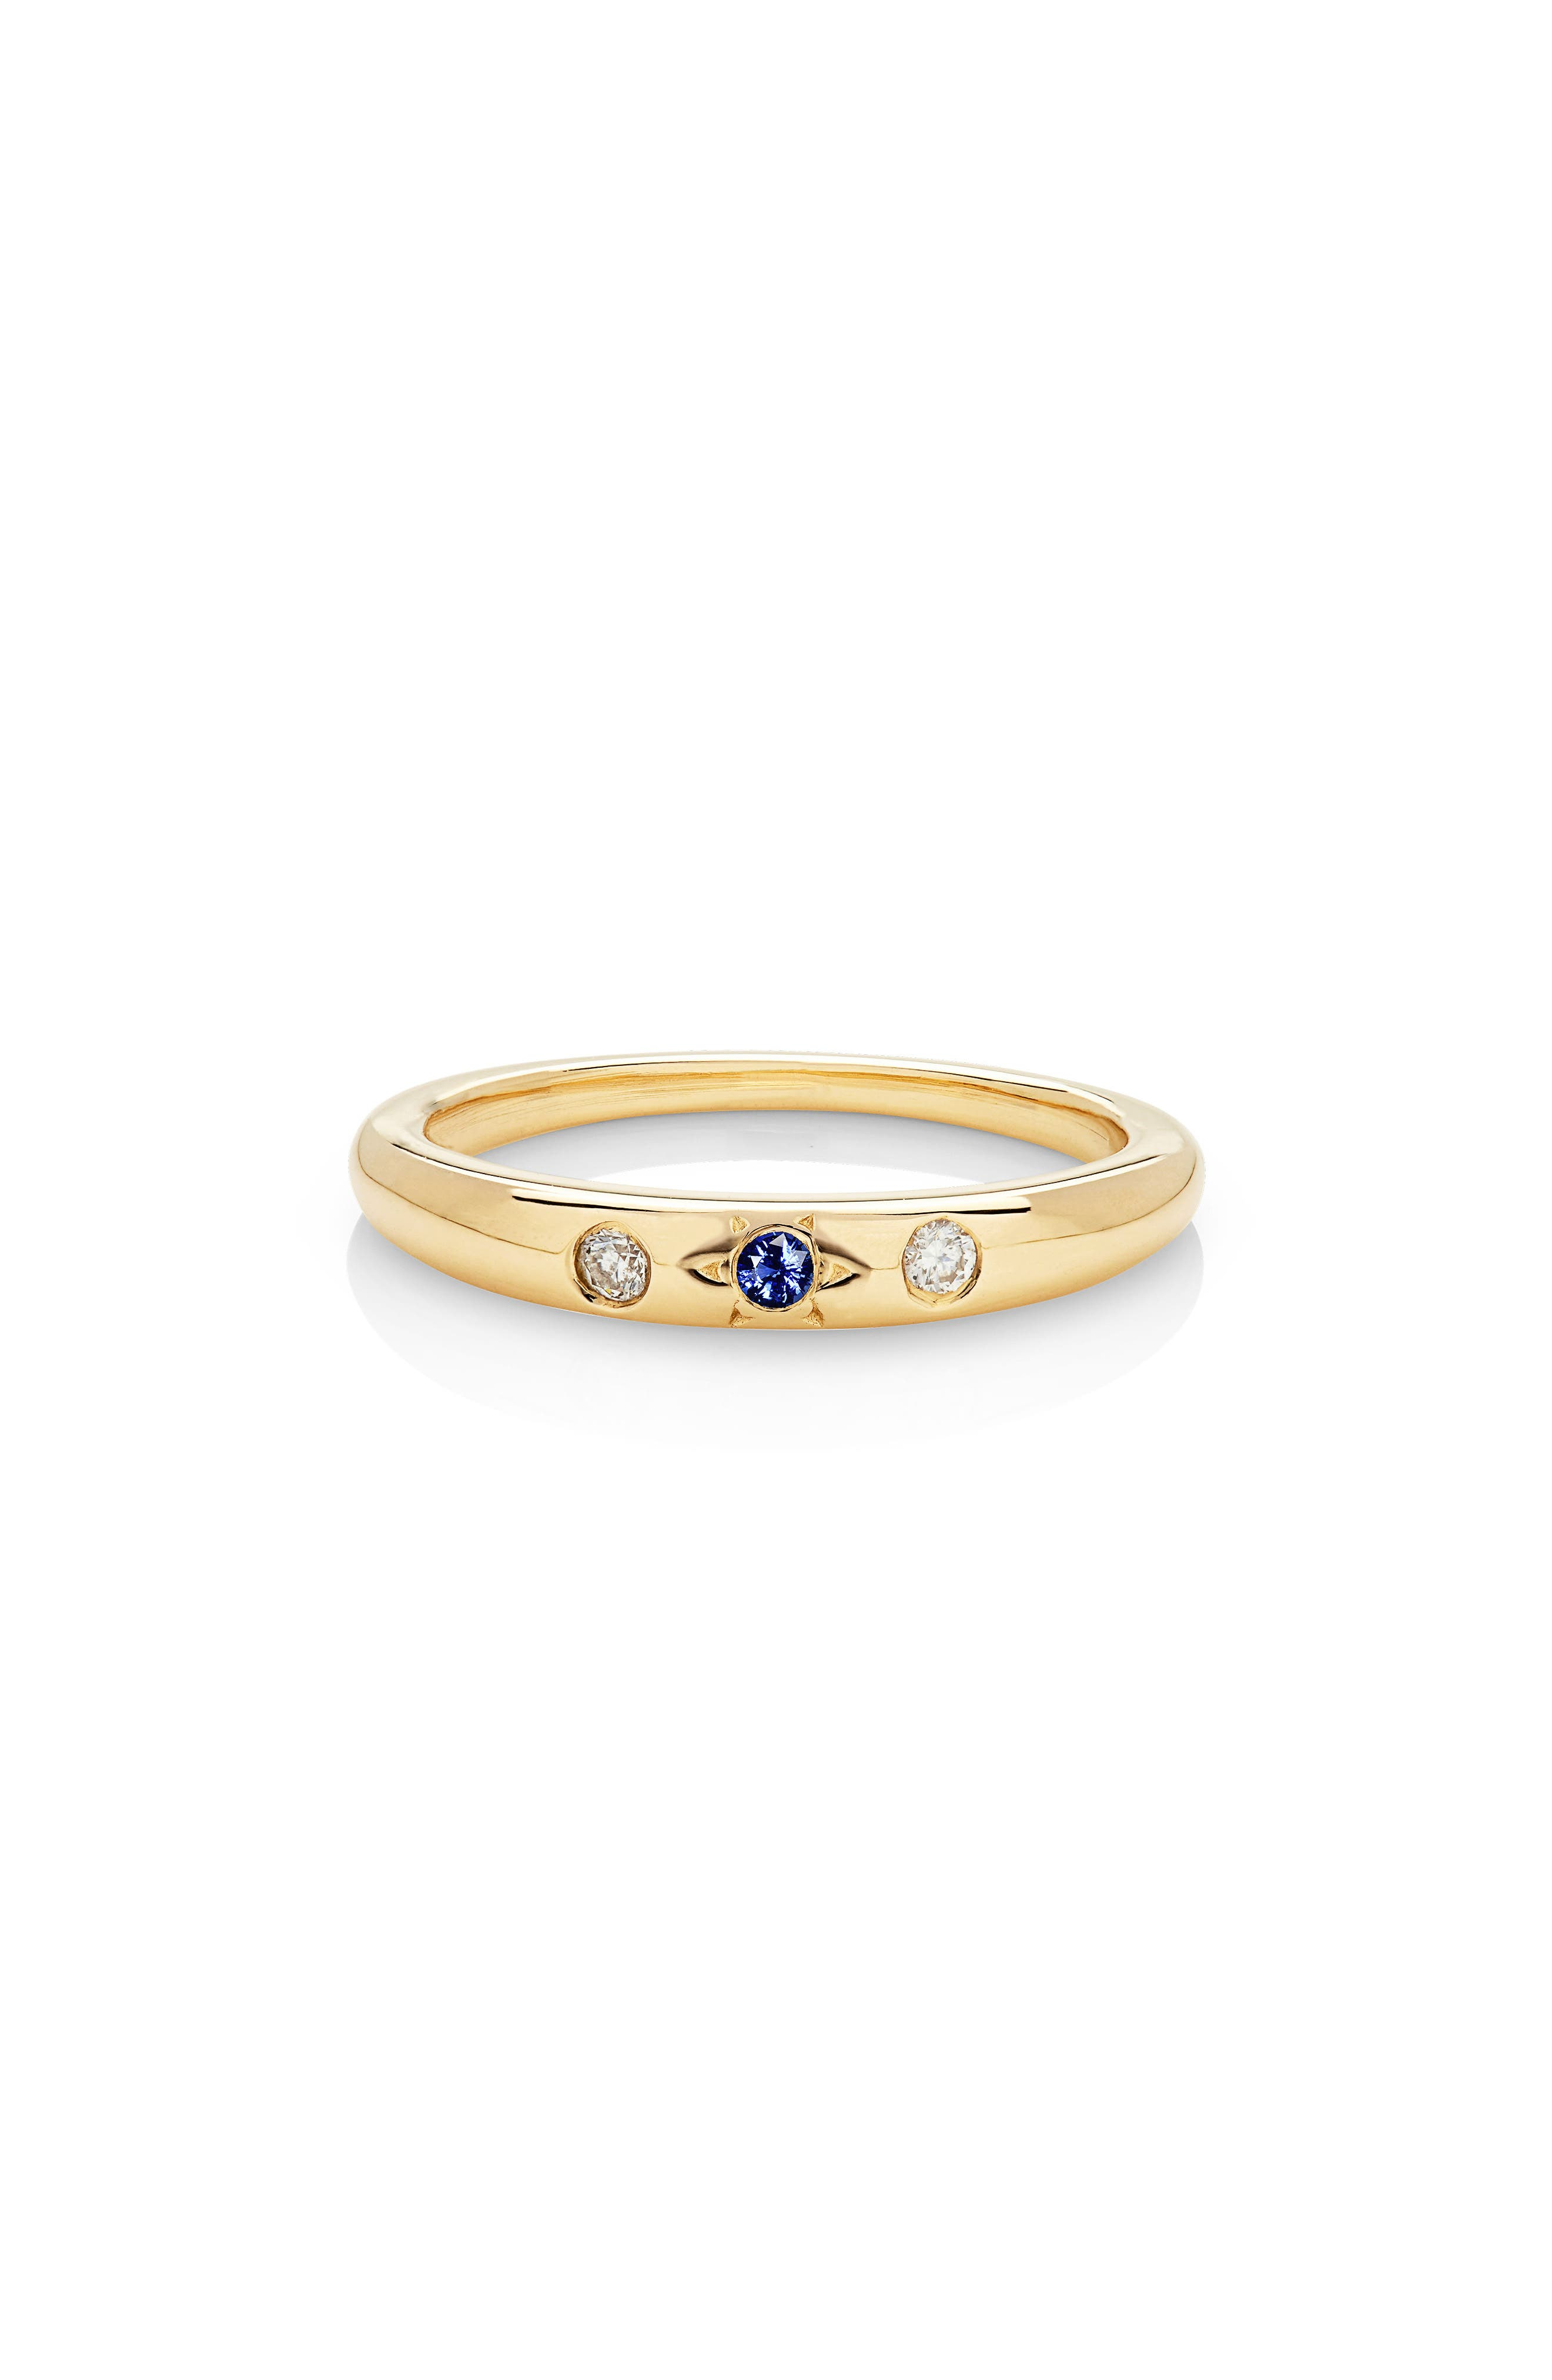 Mystic Diamond Band,                         Main,                         color, Yellow Gold/ Blue Sapphire